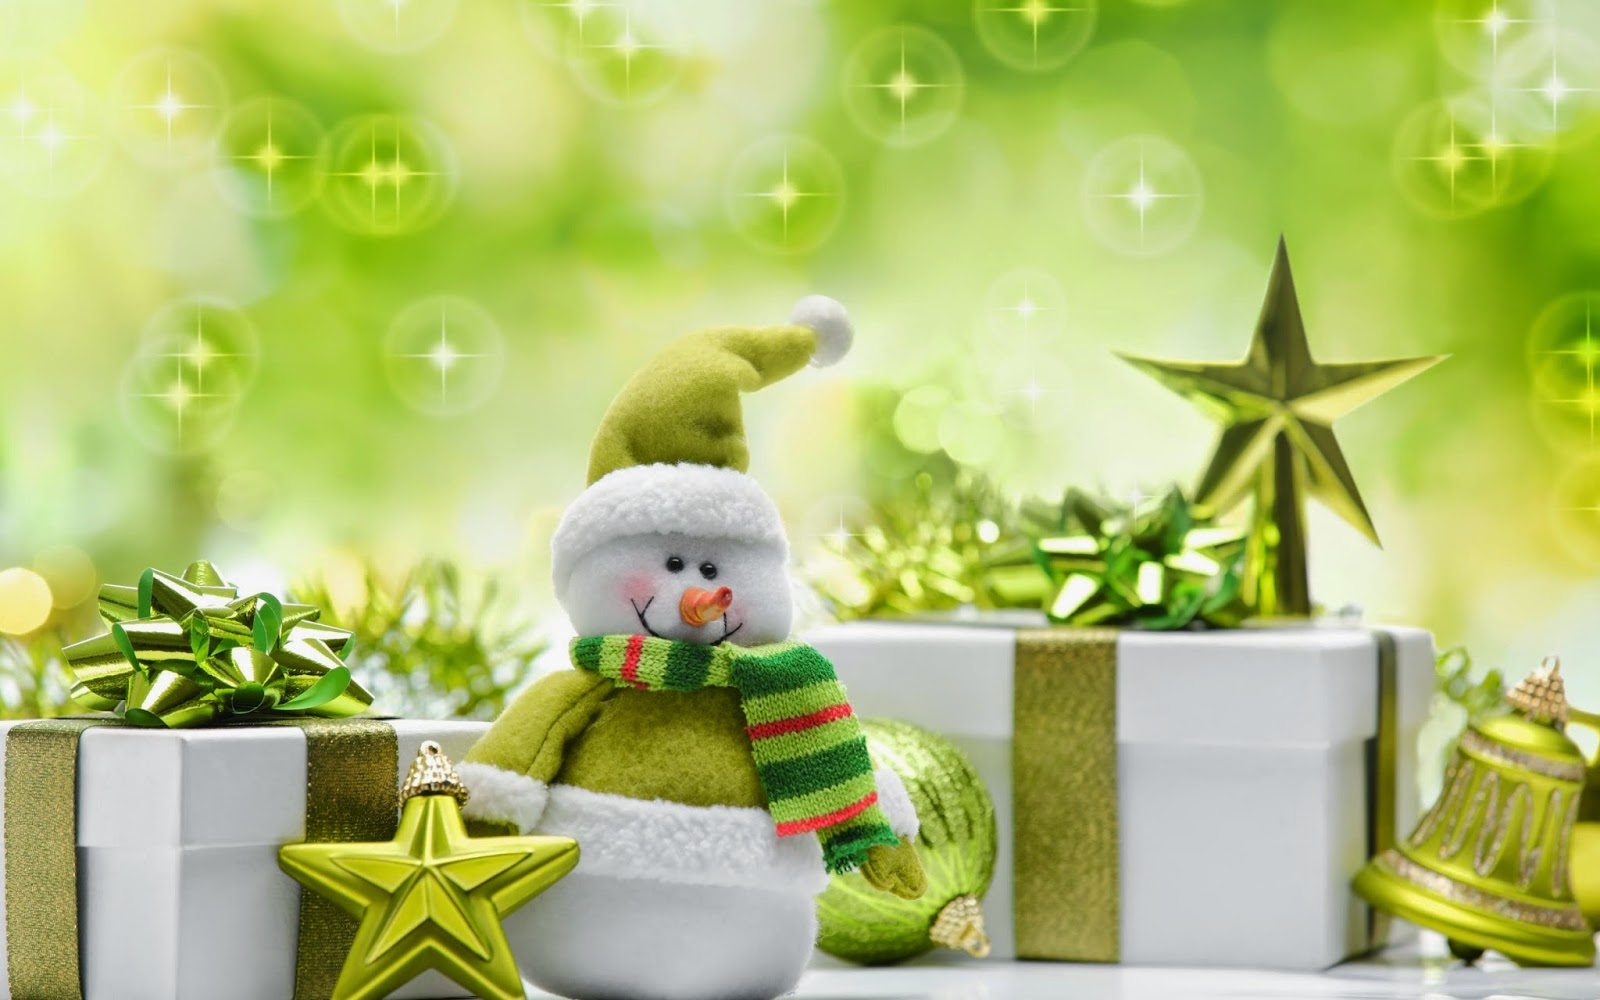 Green-theme-snowman-dresses-with-gifts-bells-background-HD-wallpaper-image.jpg